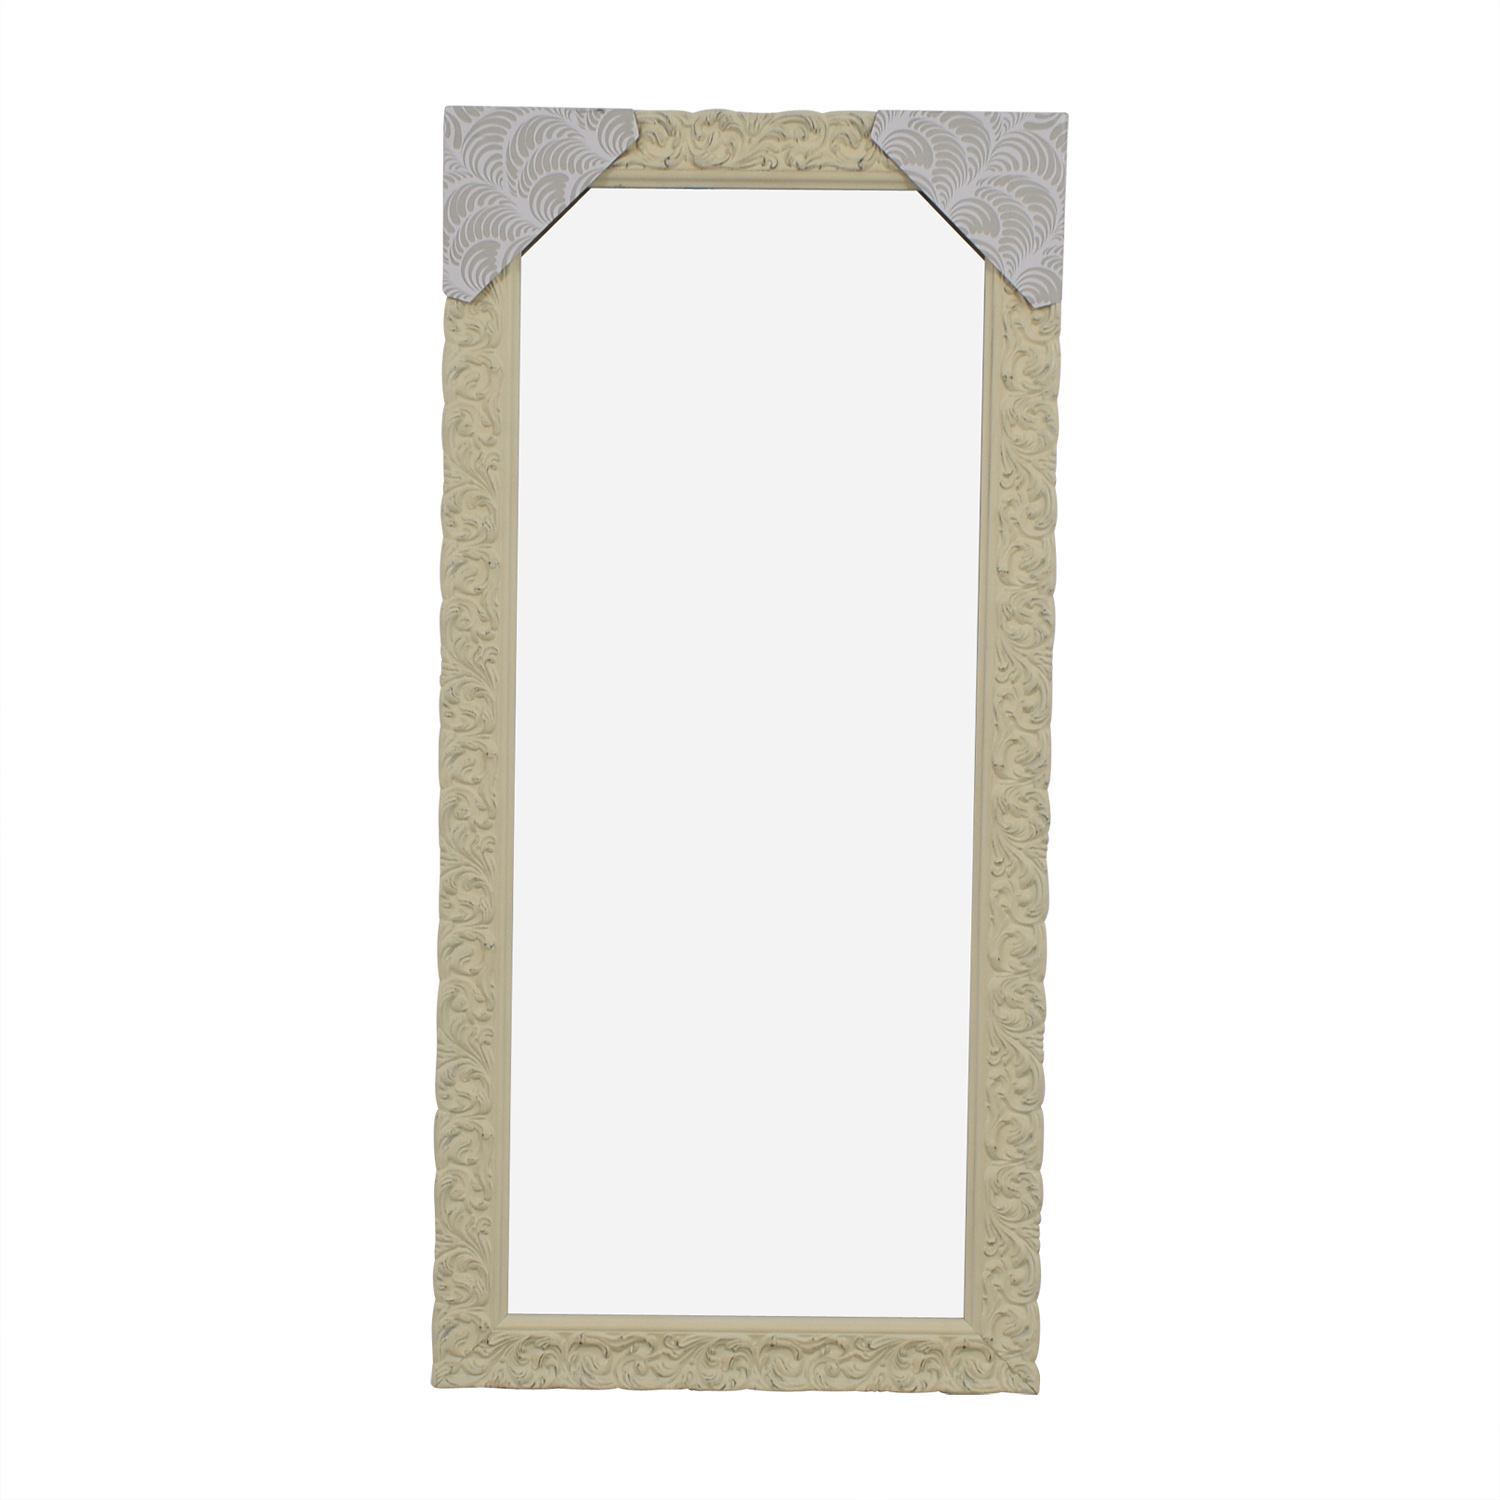 White Floral Floor Mirror dimensions